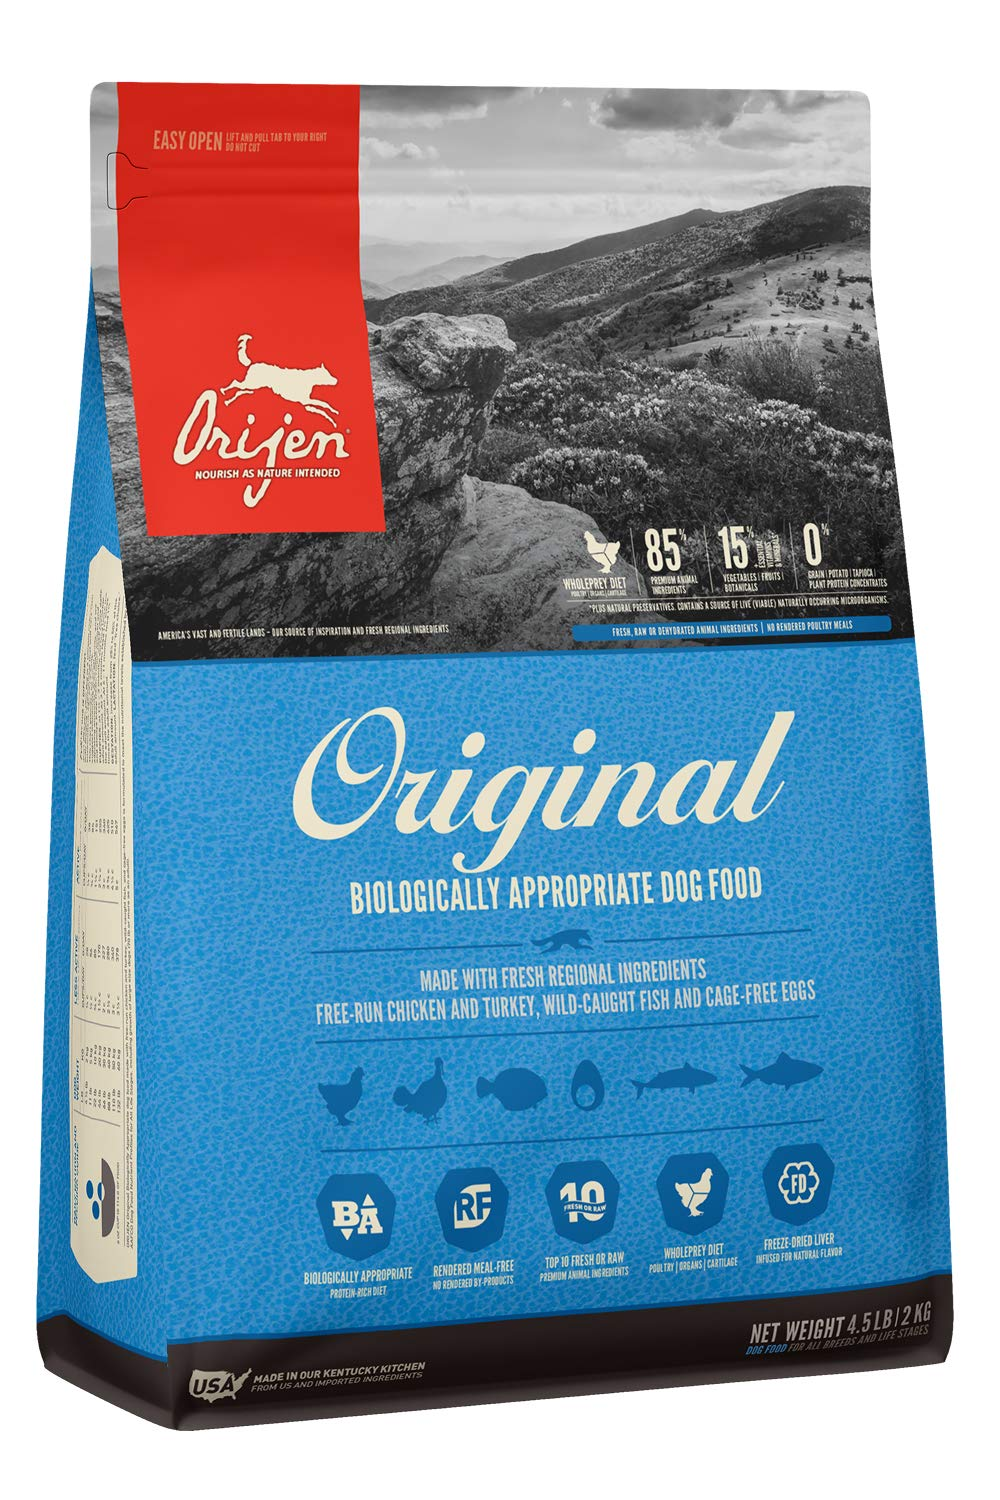 6.Orijen High-Protein, Grain-Free, Premium Quality Meat Dry Dog Food